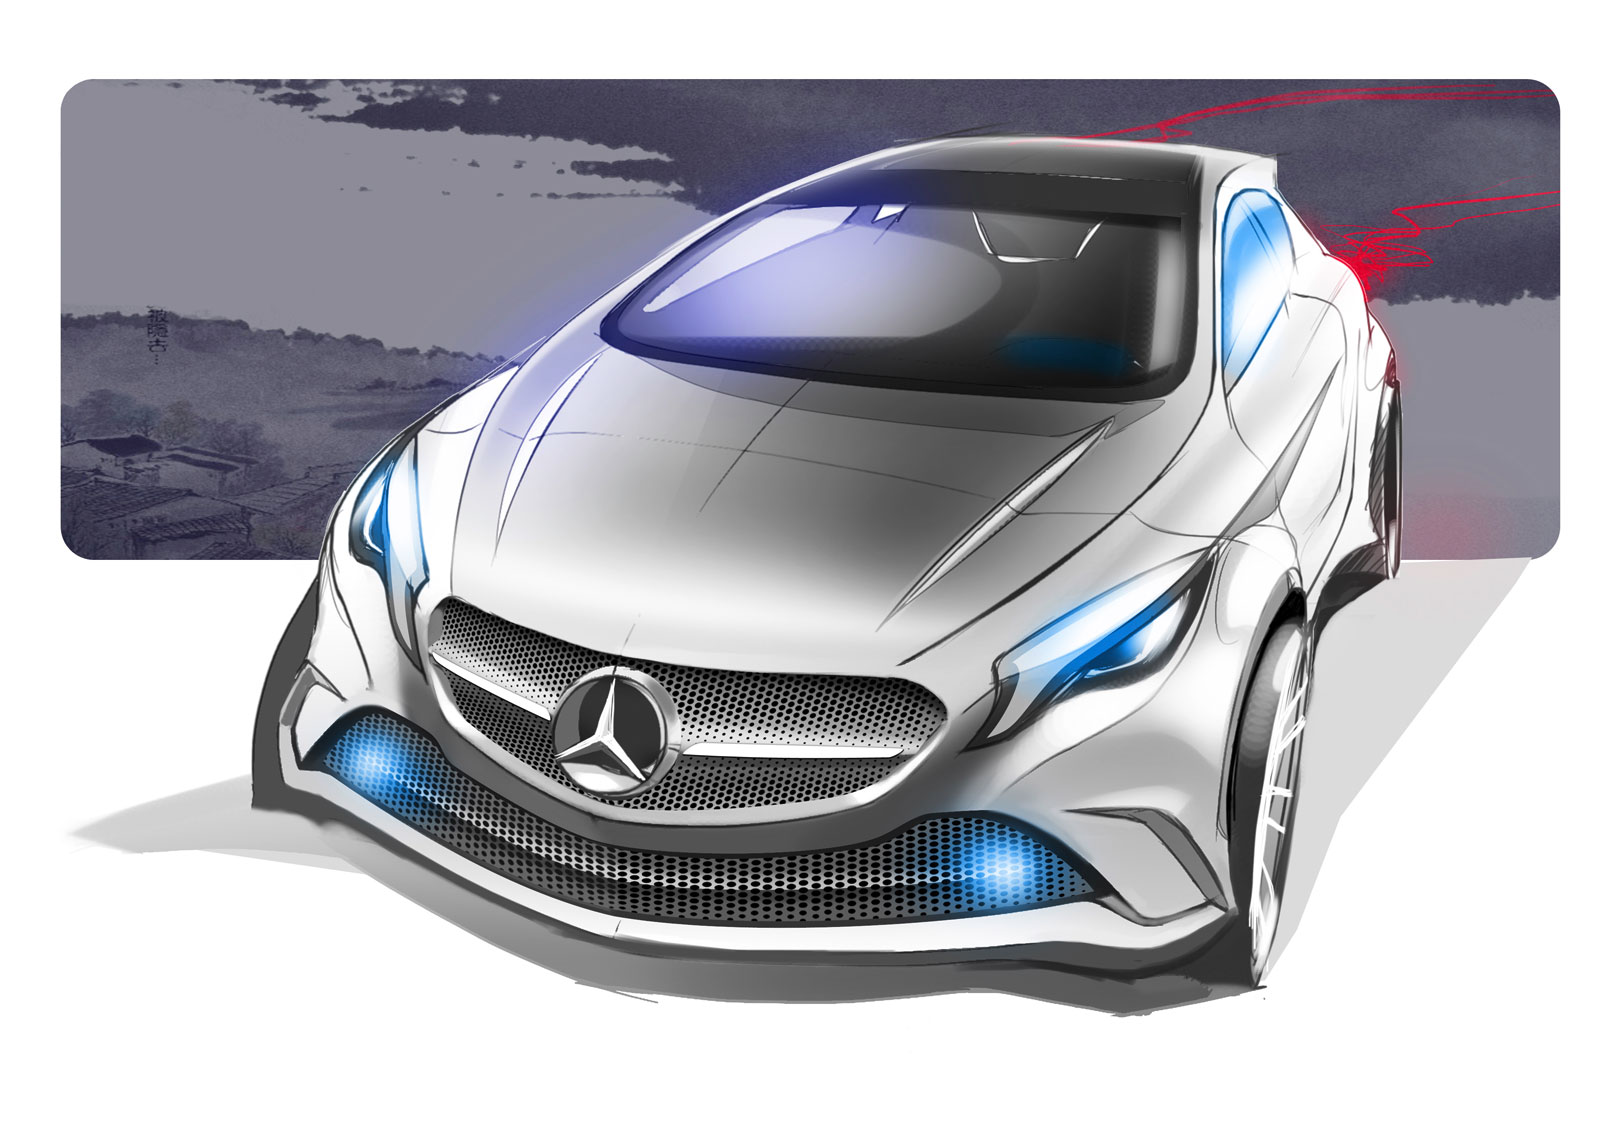 Mercedes Benz Concept A Class Design Sketch on Volvo S60 Sketch